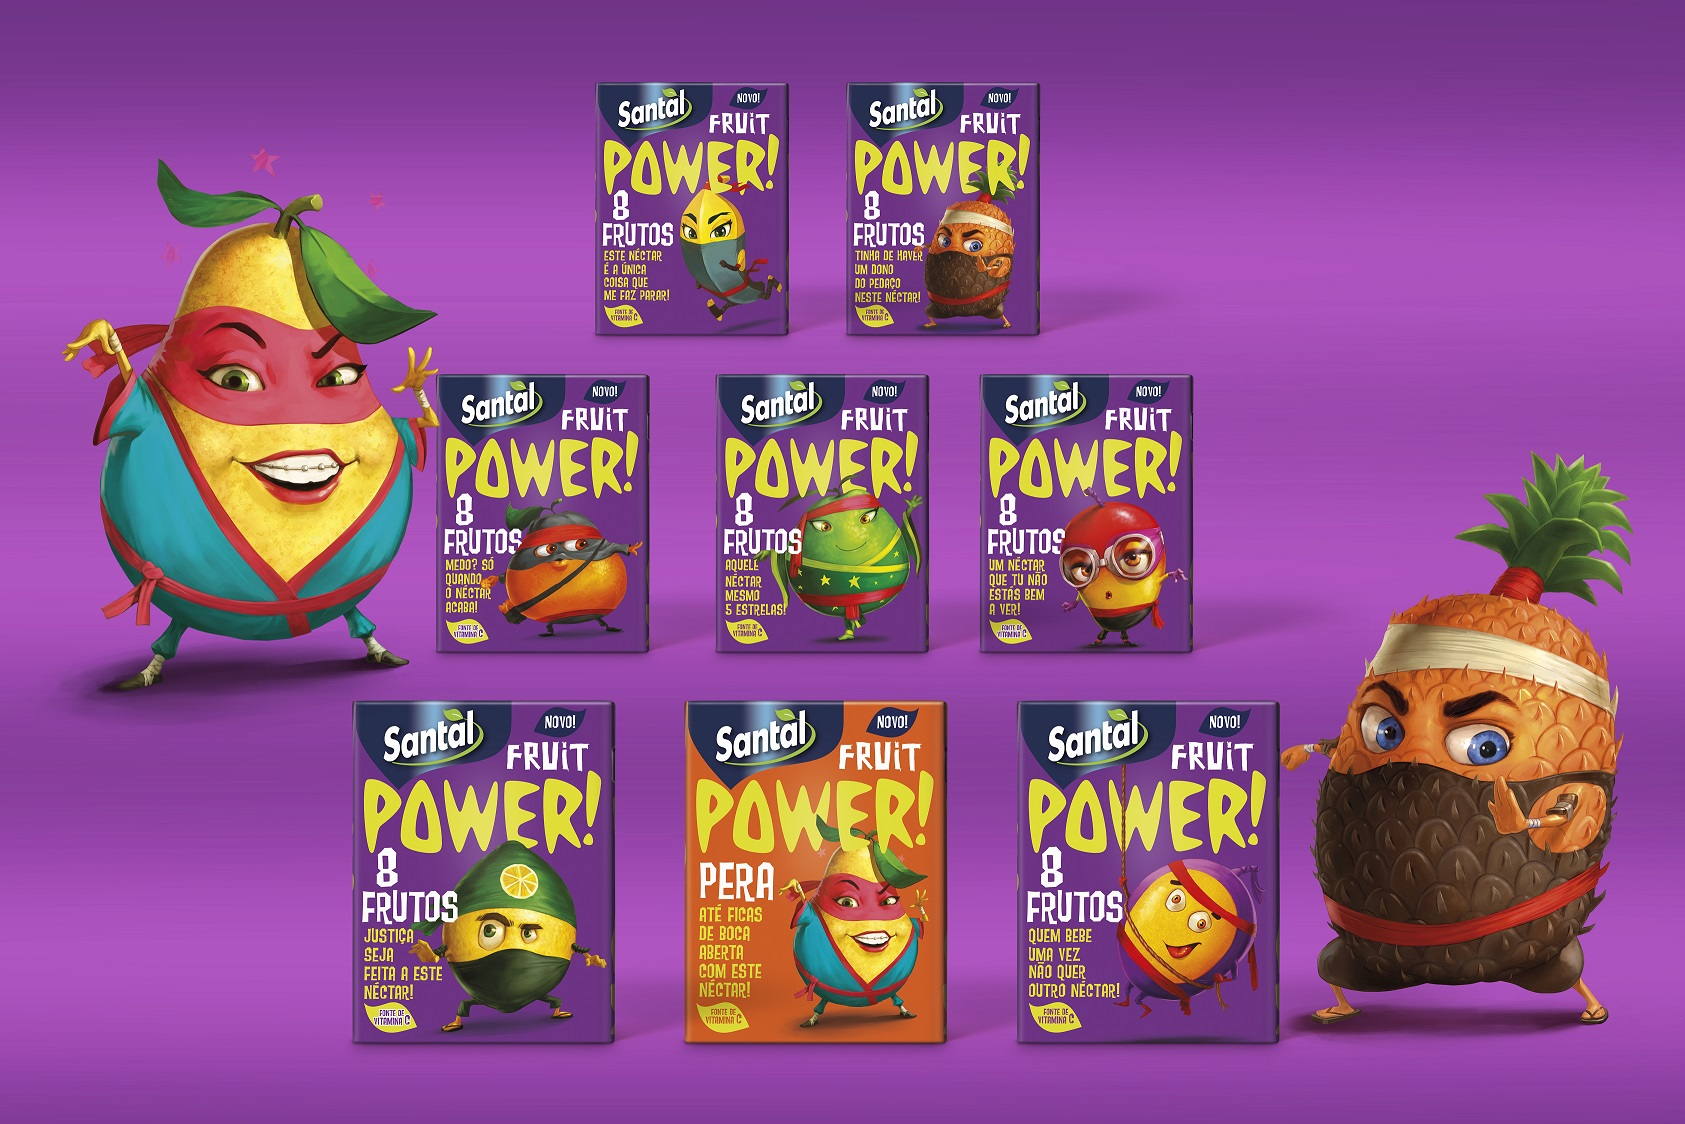 Ogilvy dá 'power ninjas' à Santal